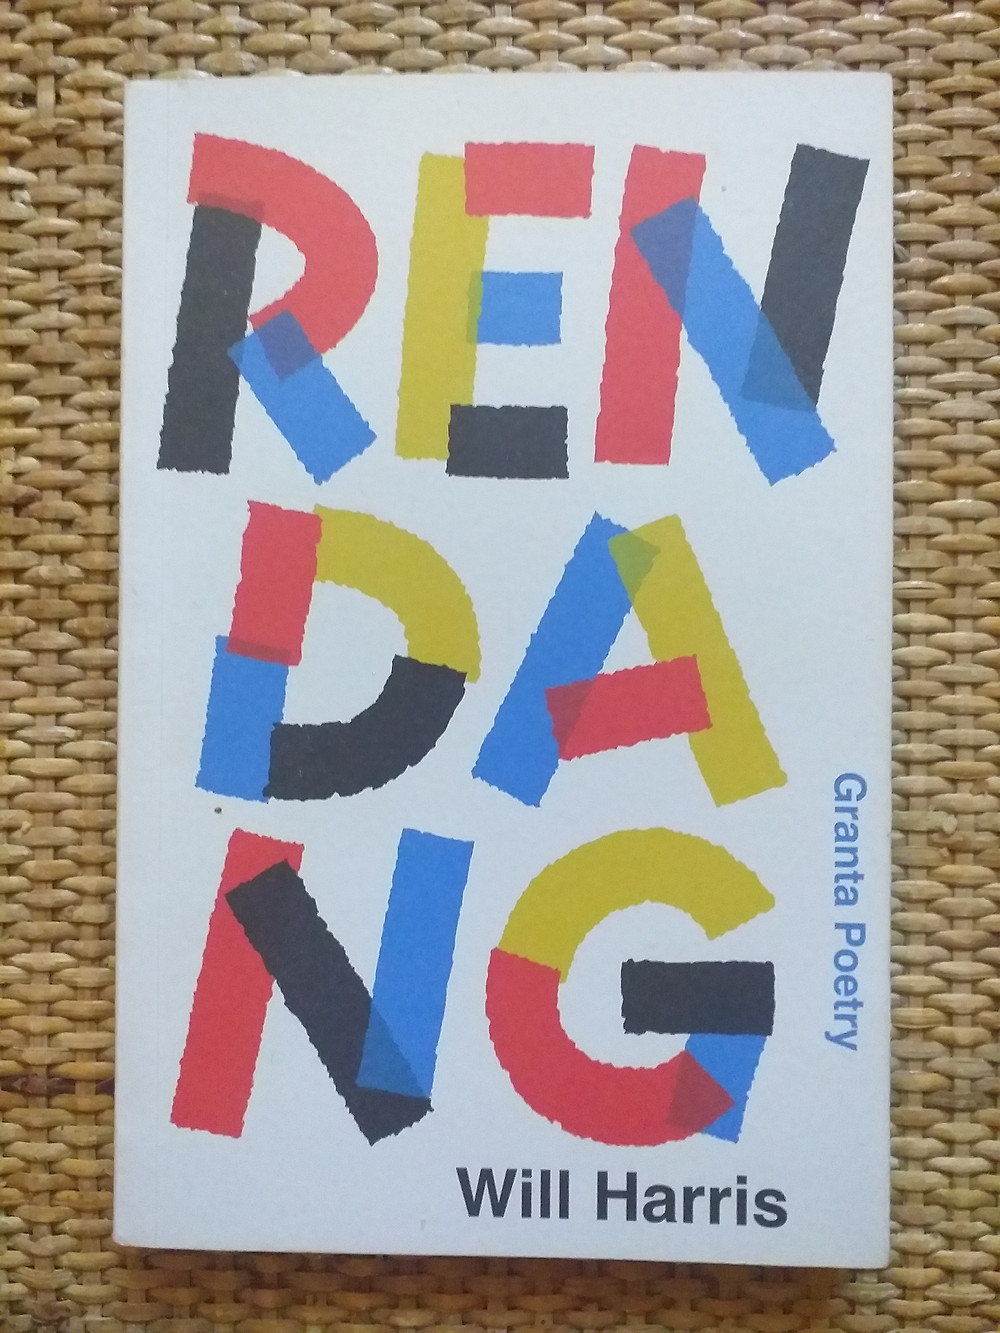 Upon a cross-hatch surface the book RENDANG appears with bold red, yellow, blue and black letters upon a white background